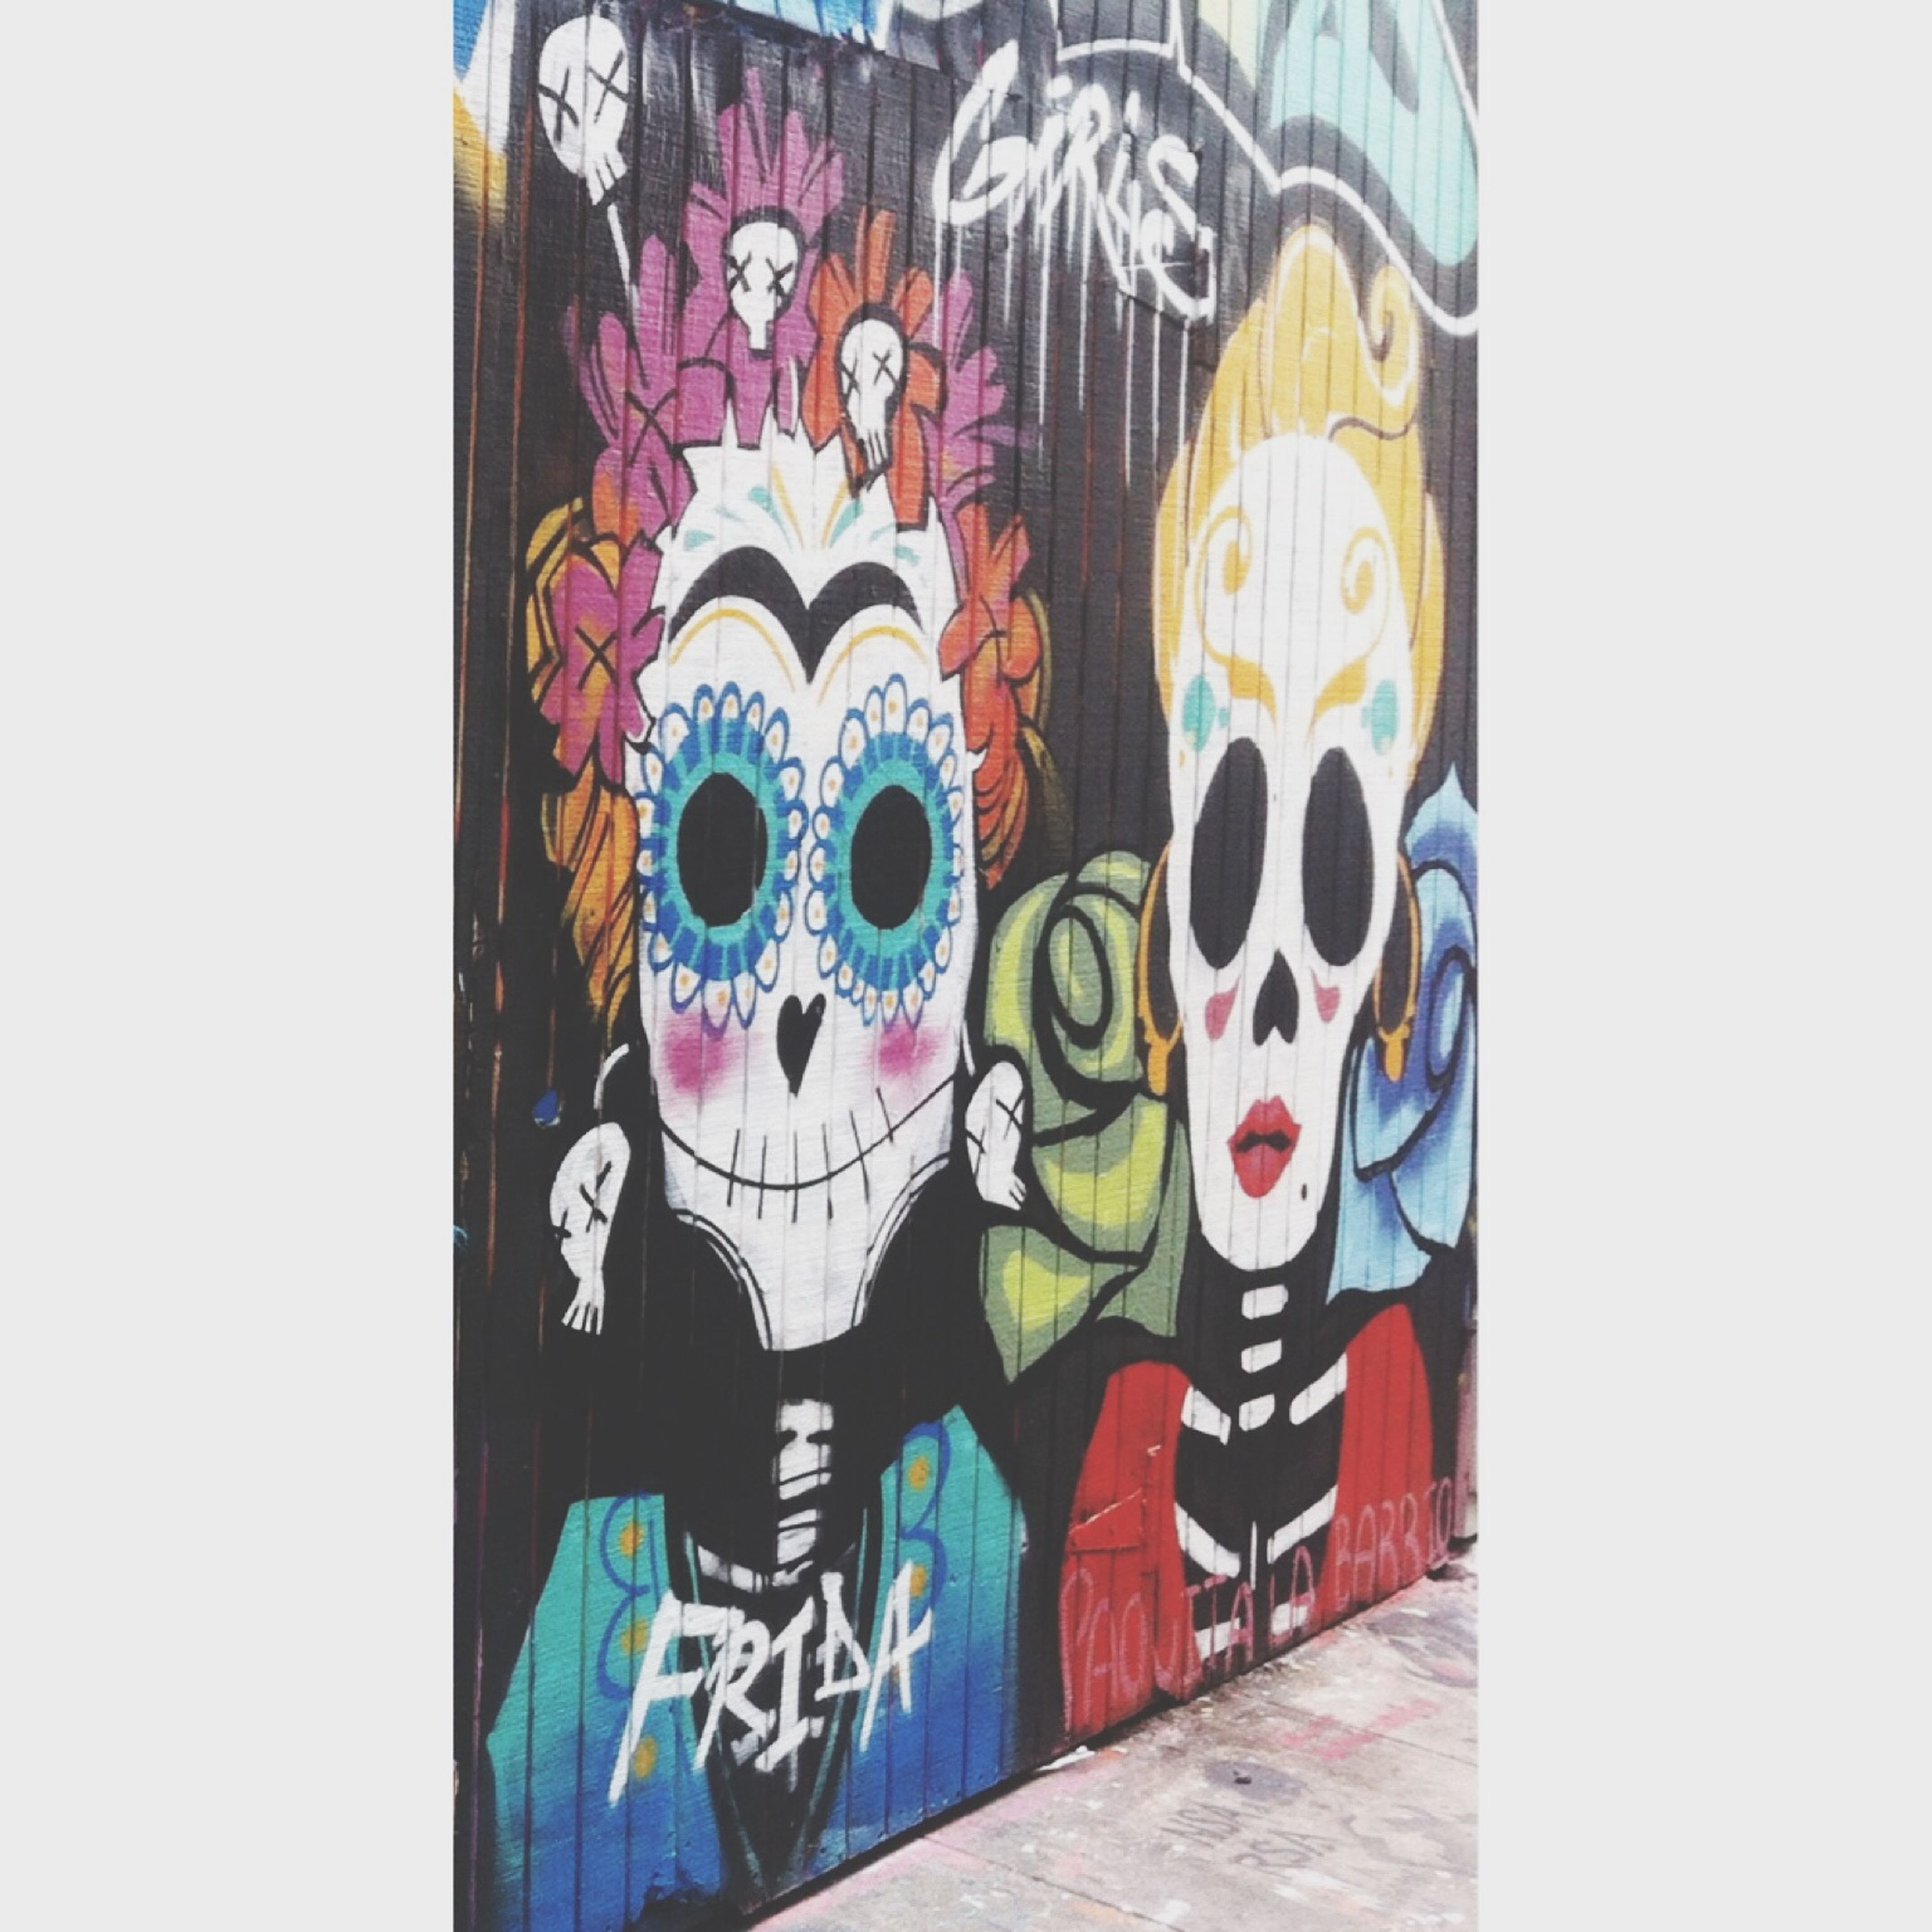 art, art and craft, creativity, multi colored, graffiti, wall - building feature, architecture, built structure, human representation, design, pattern, colorful, wall, no people, mural, day, indoors, craft, street art